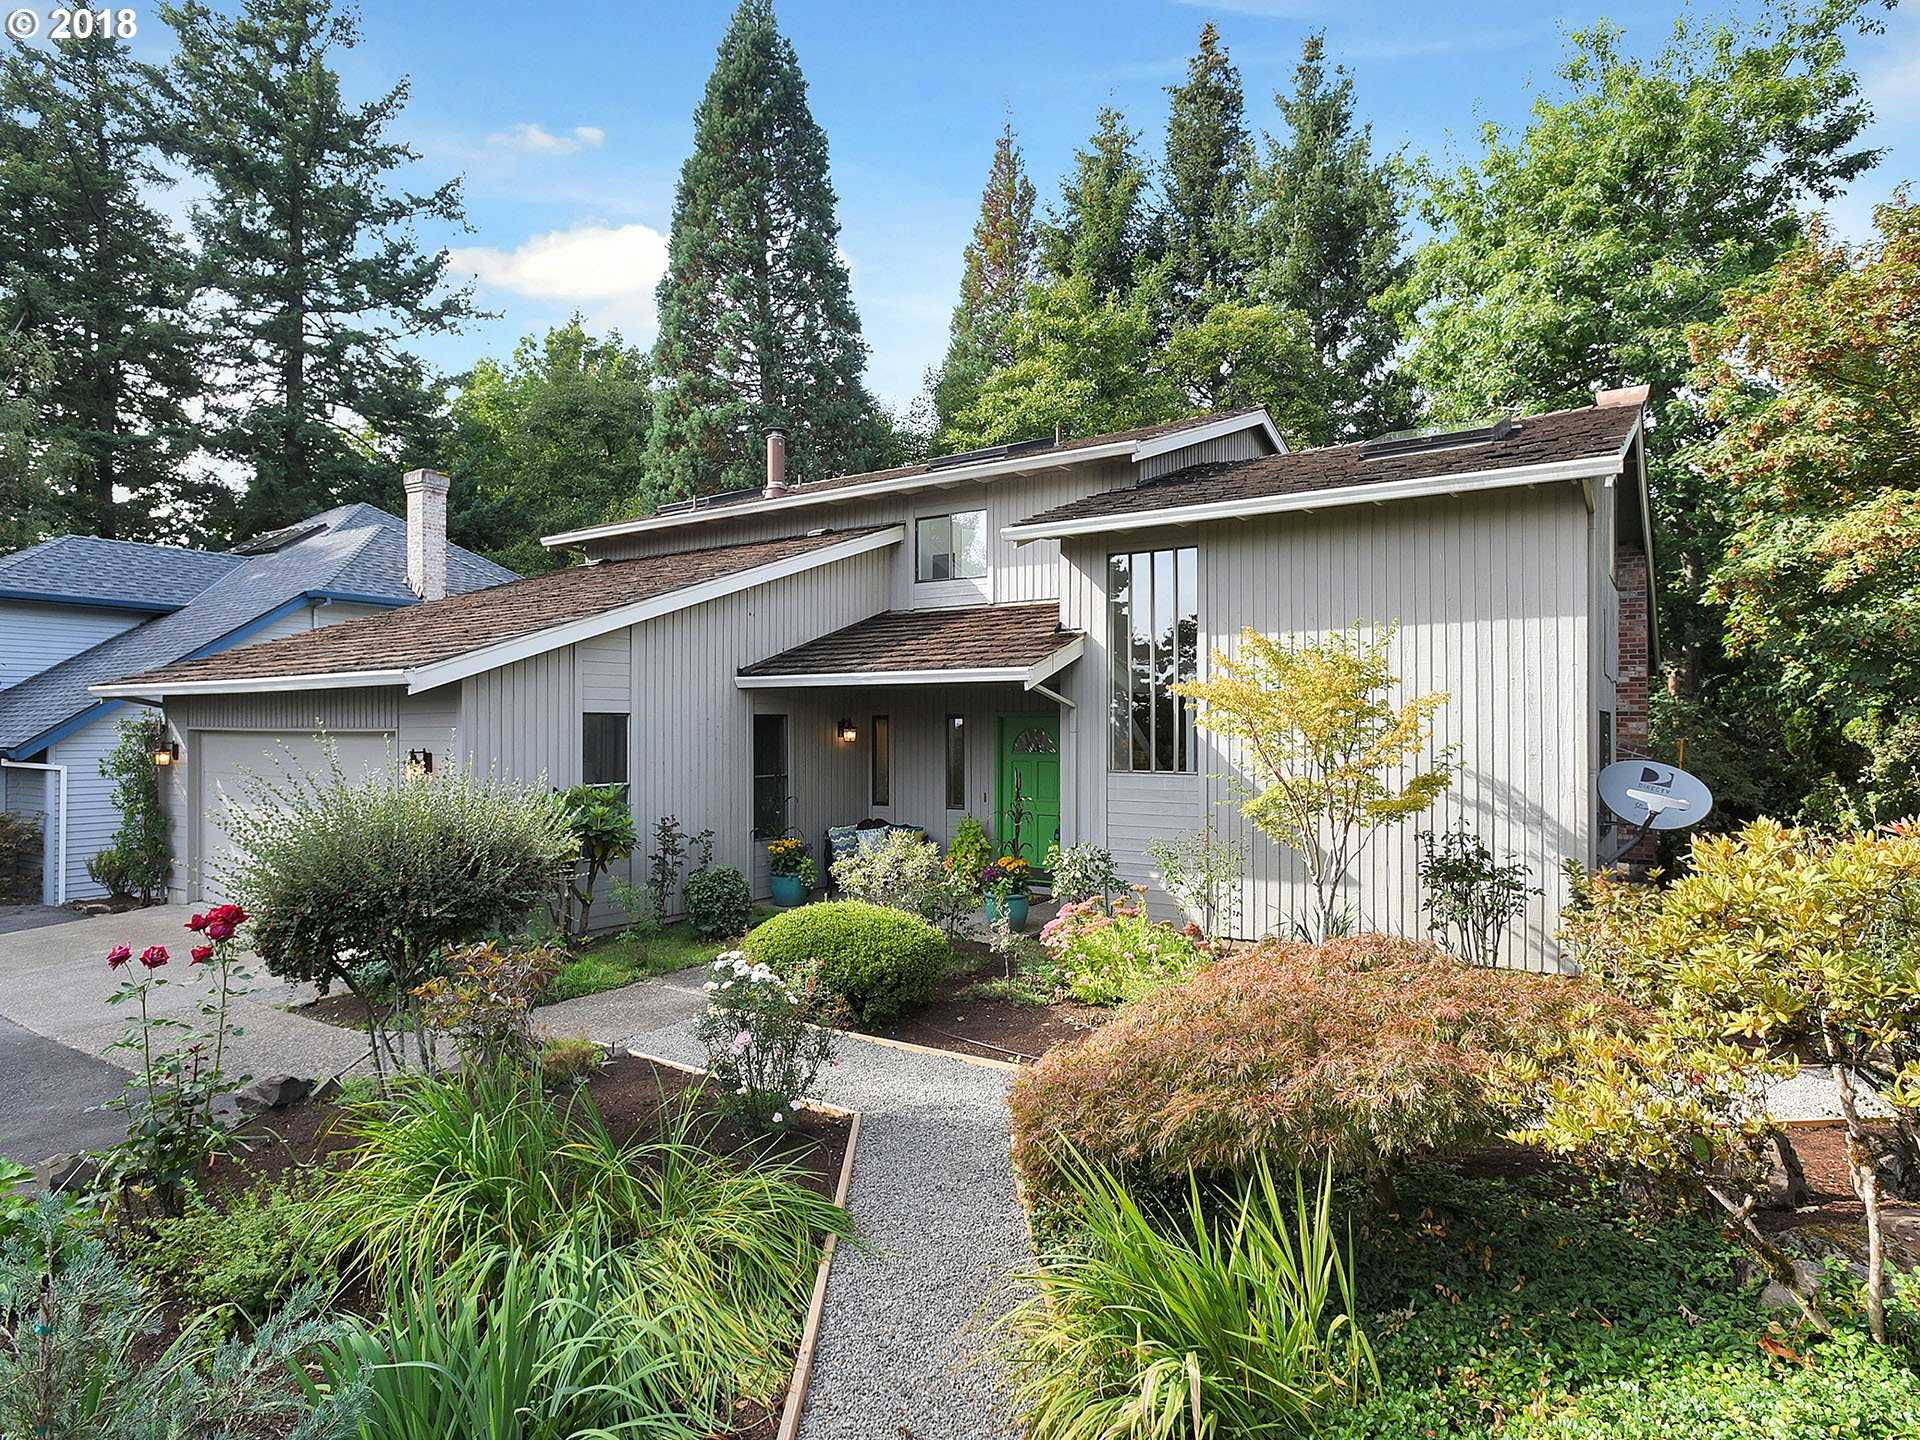 $599,000 - 3Br/3Ba -  for Sale in West Slope, Portland